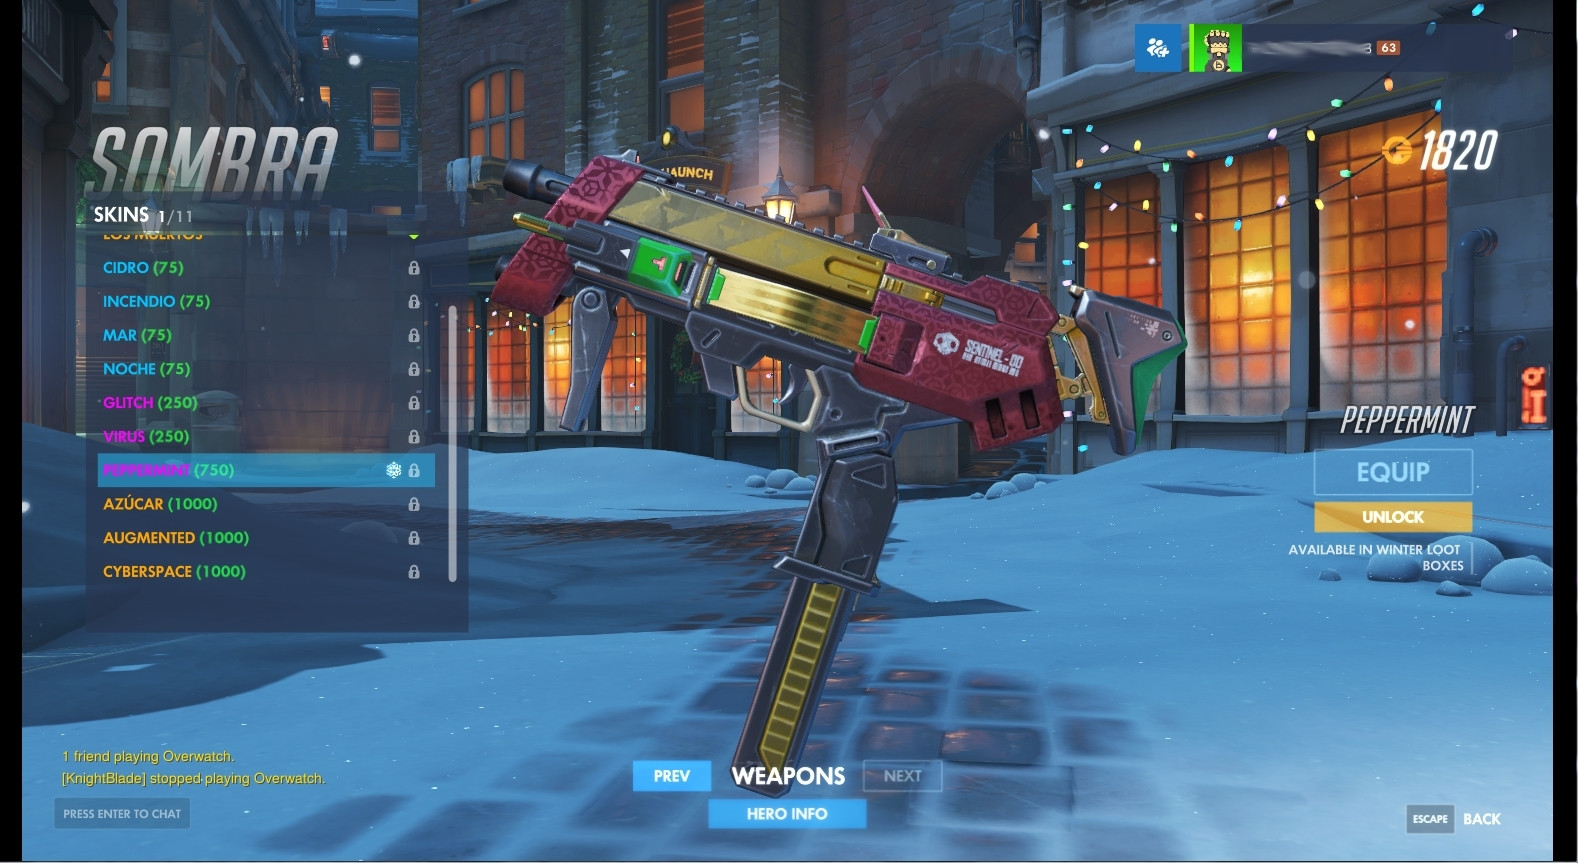 Sombra (Peppermint) Weapon